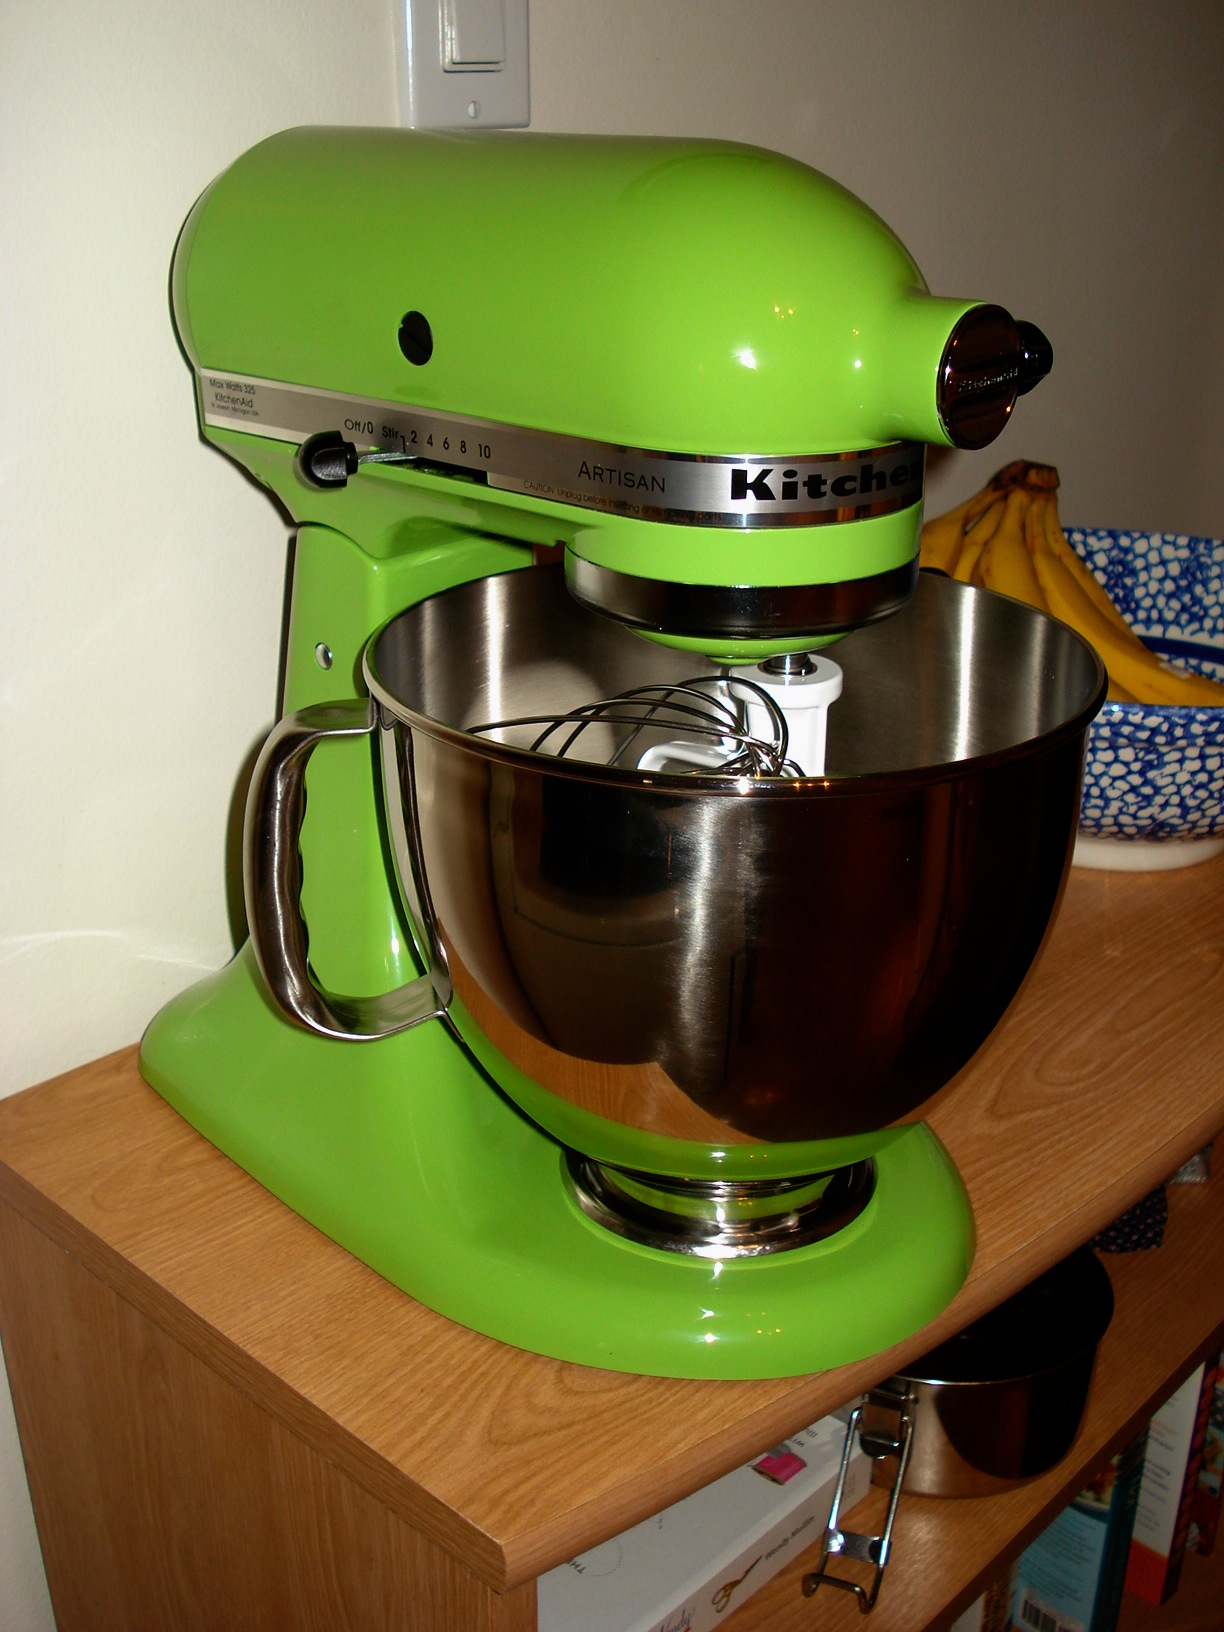 File:Green Apple KitchenAid.jpg - Wikimedia Commons